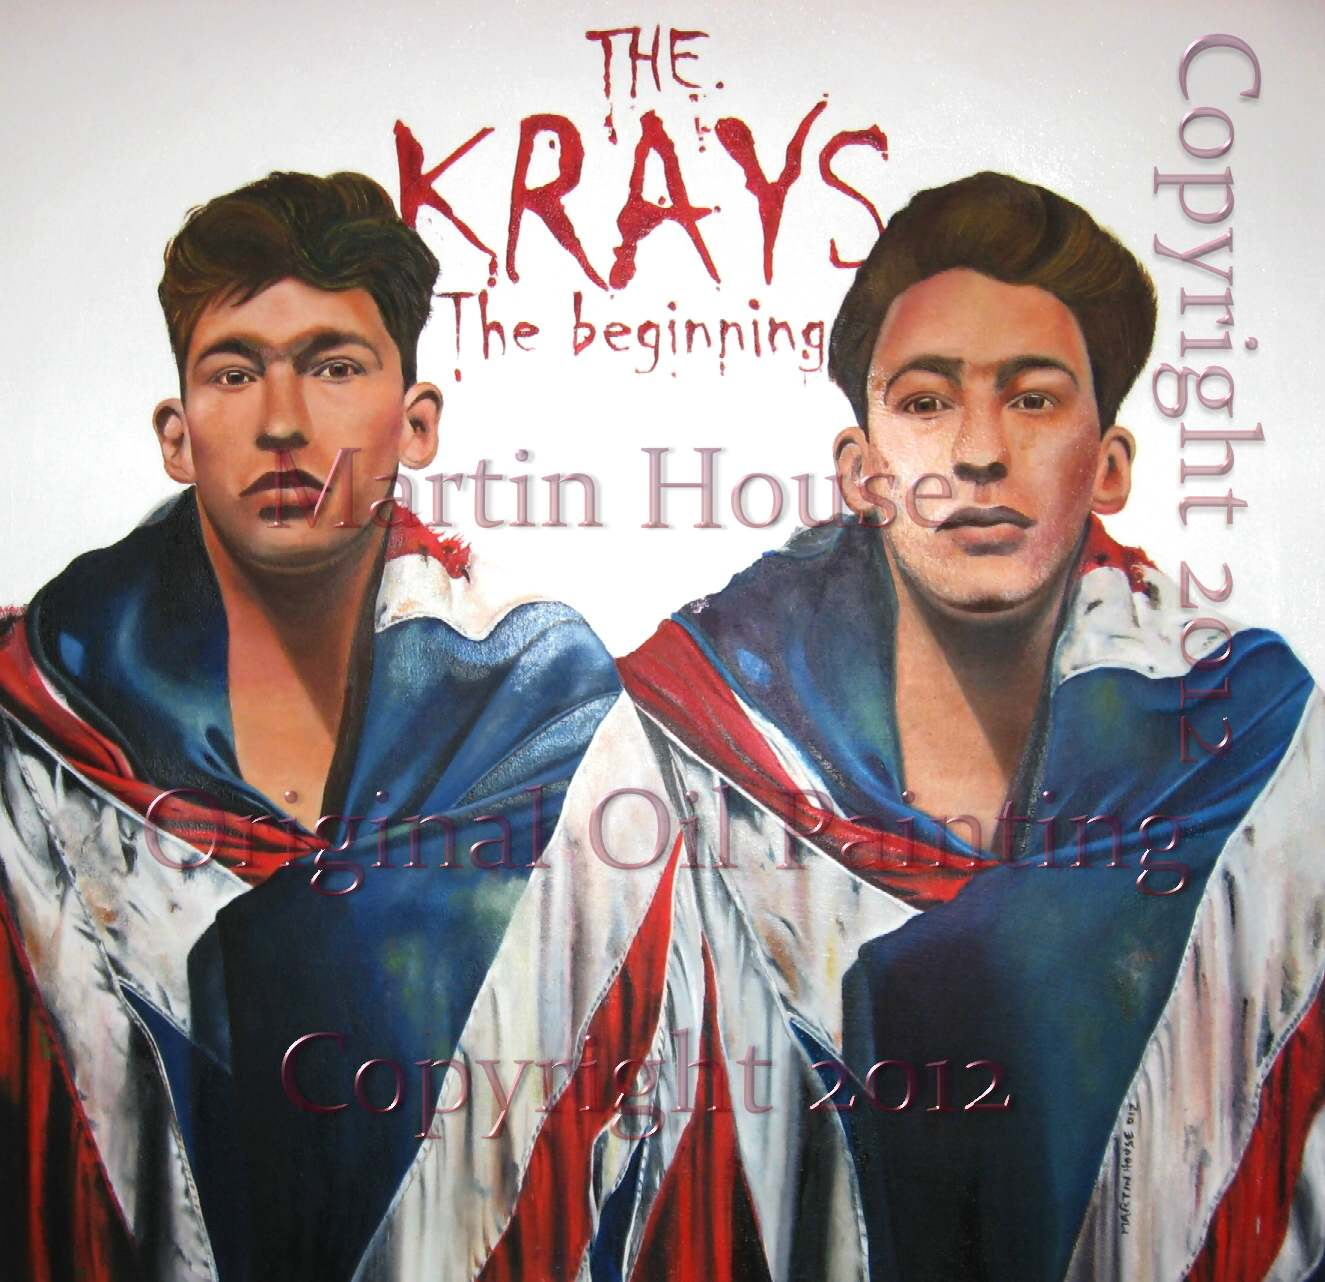 The Krays Oil Painting